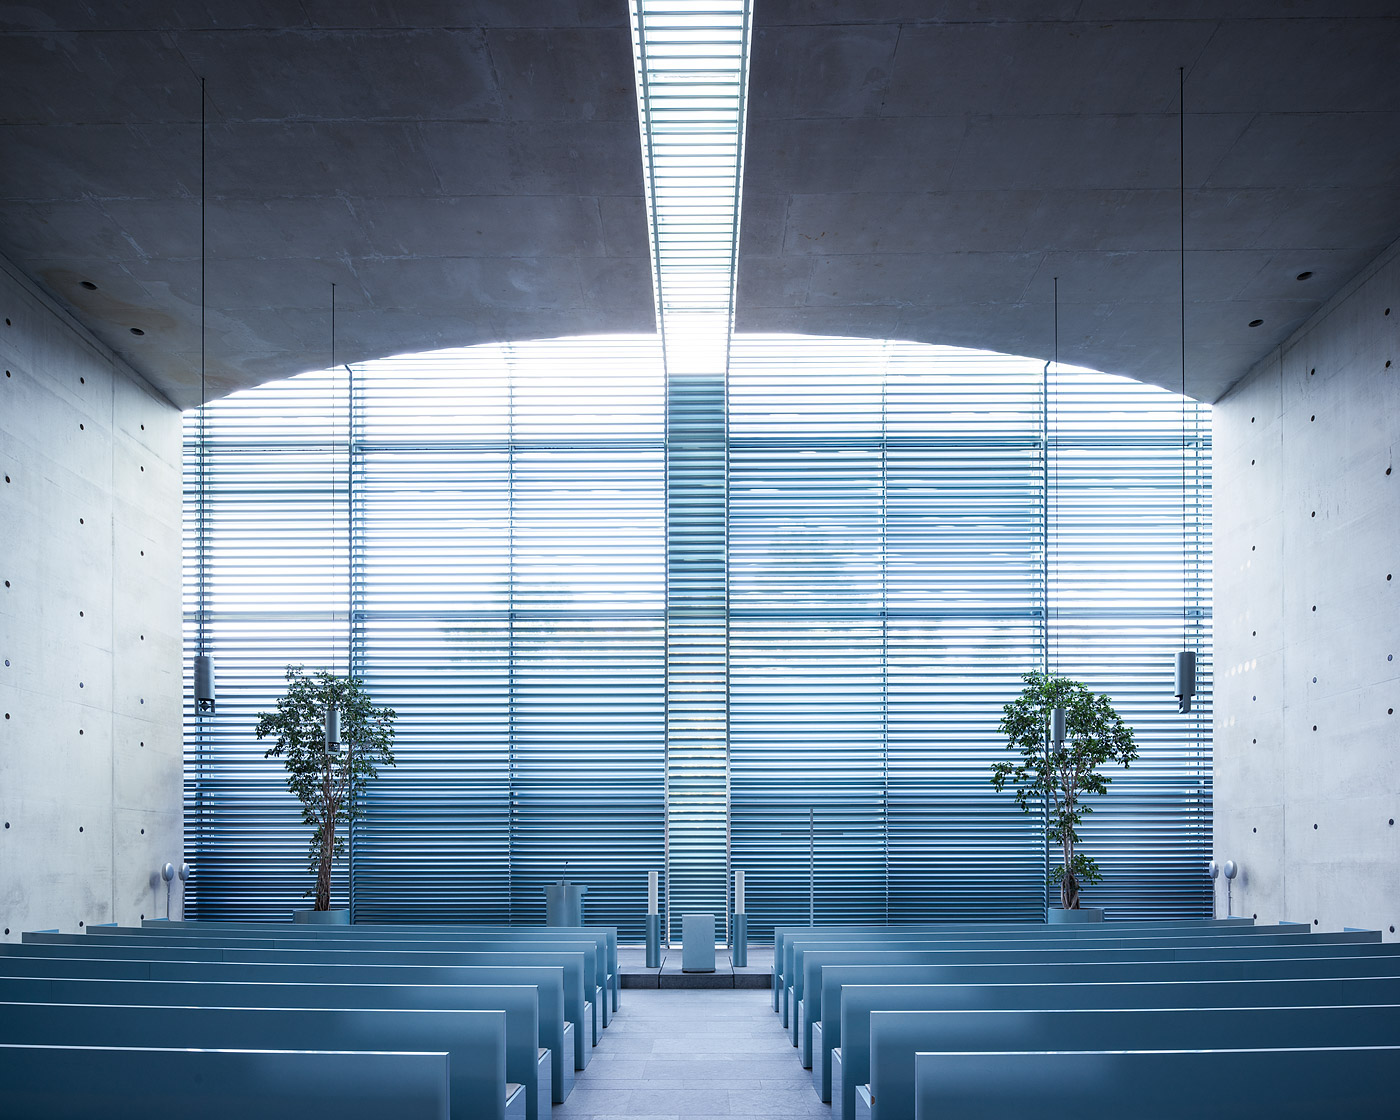 Architecture Photography Series berlin interiors - architecture photography